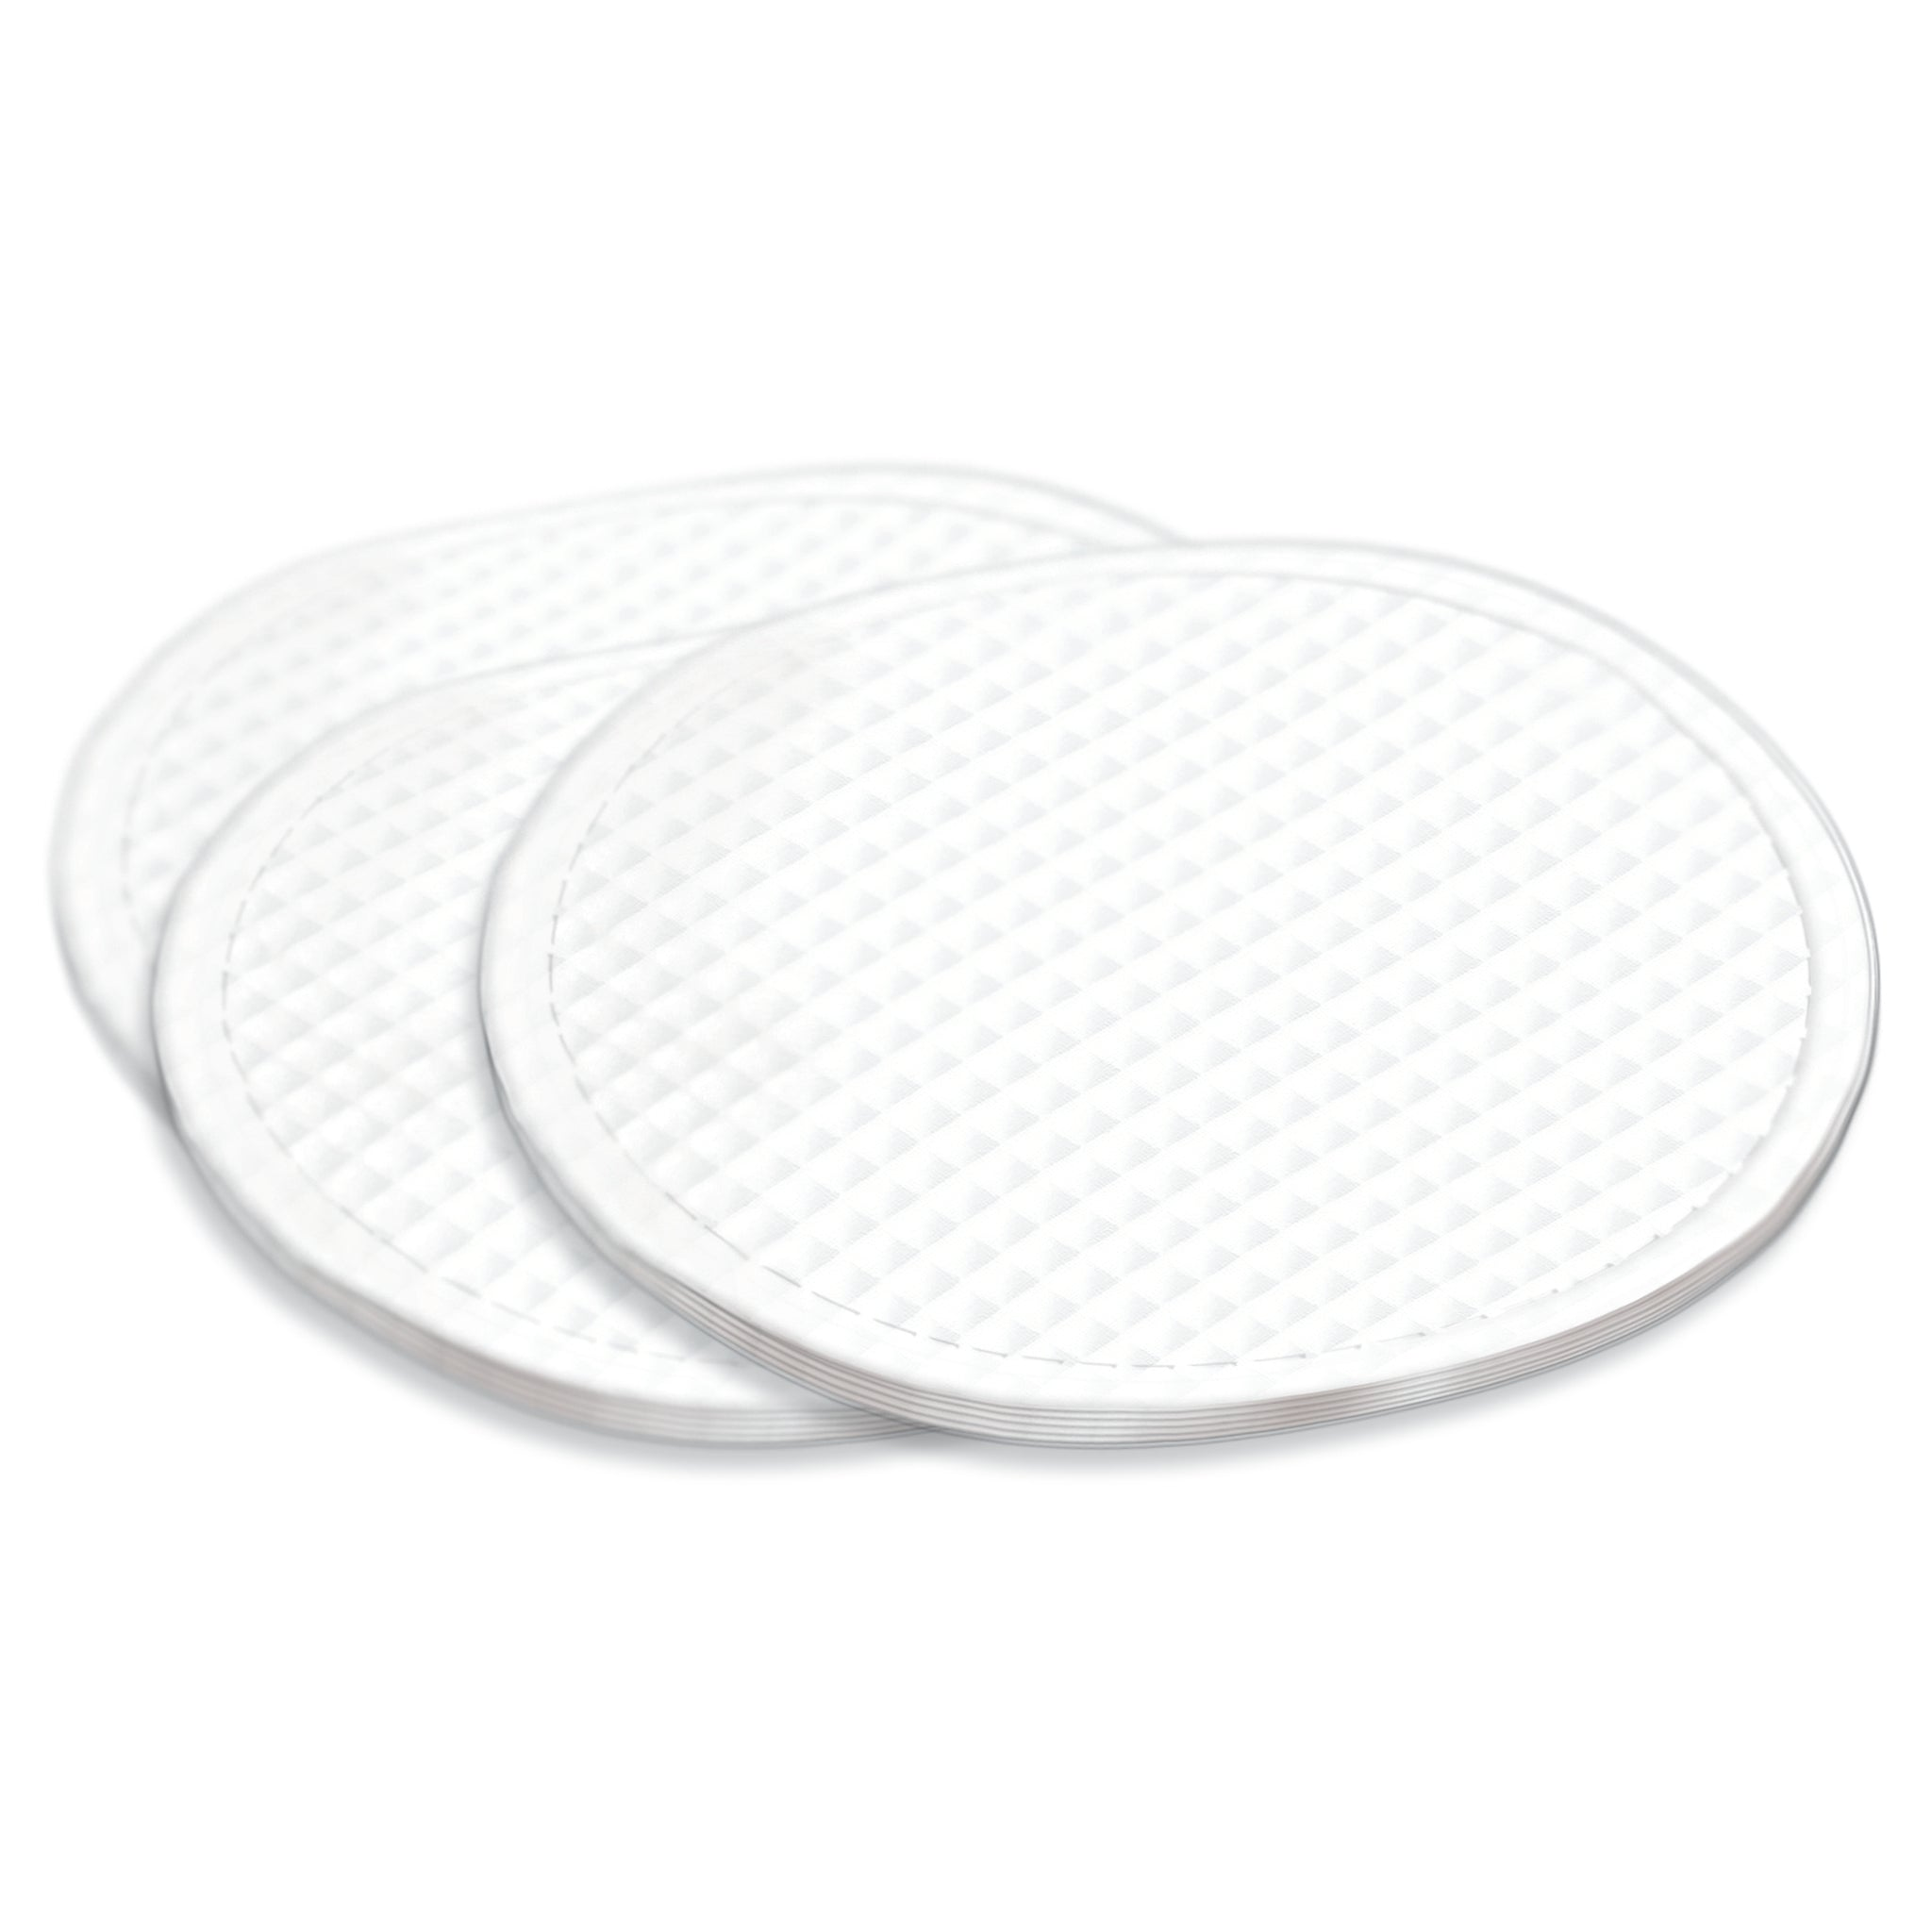 Organ(y)c Beauty Cotton Round Pads